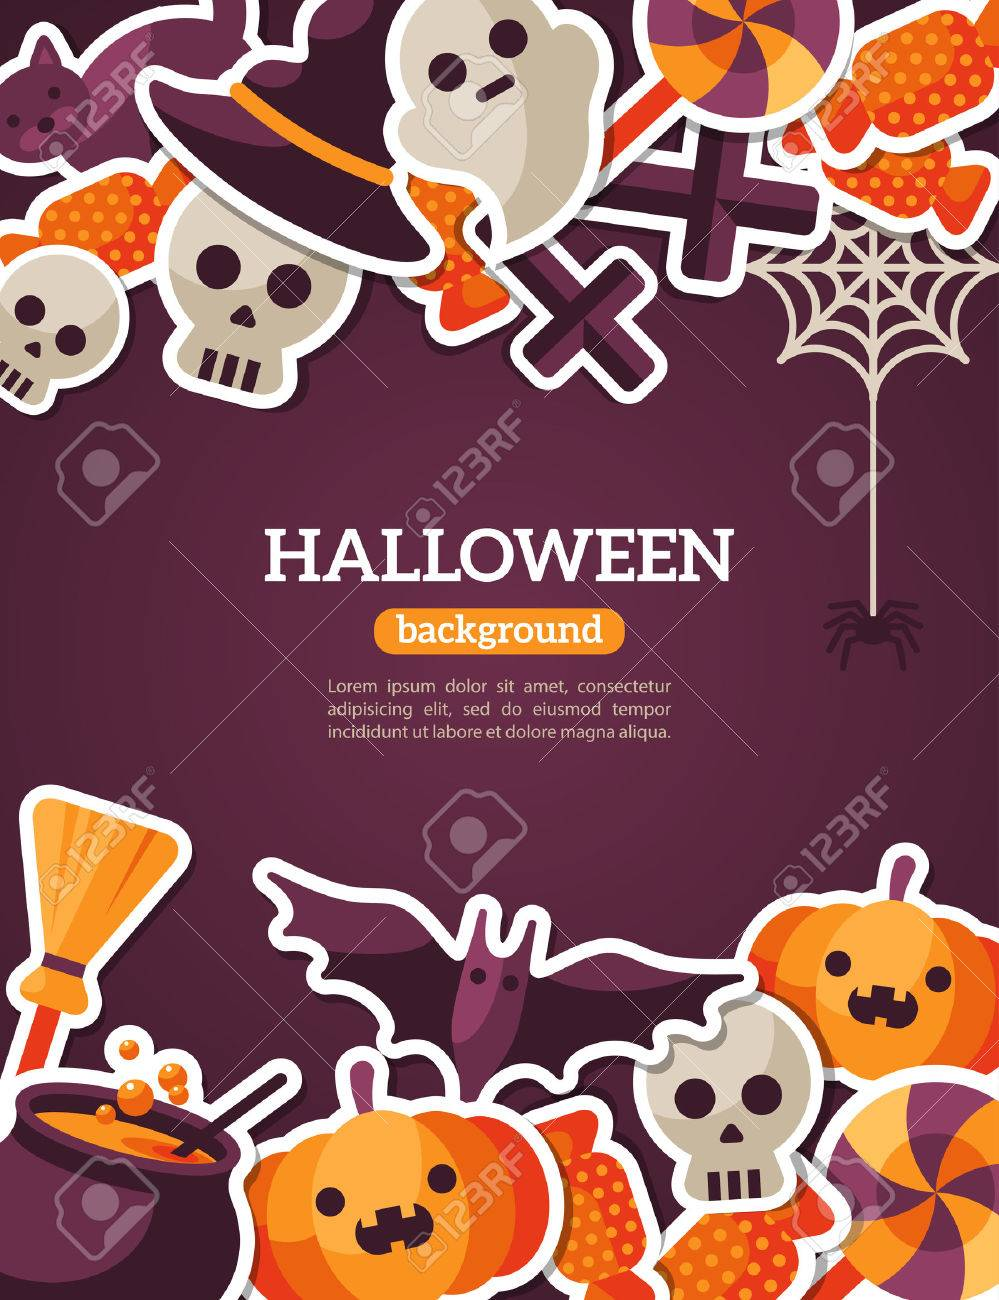 Halloween Concept Banner With Flat Icon Set on Dark Violet Backdrop. Vector Flat Illustration. Halloween Signs and Symbols. Trick or Treat. - 43321750